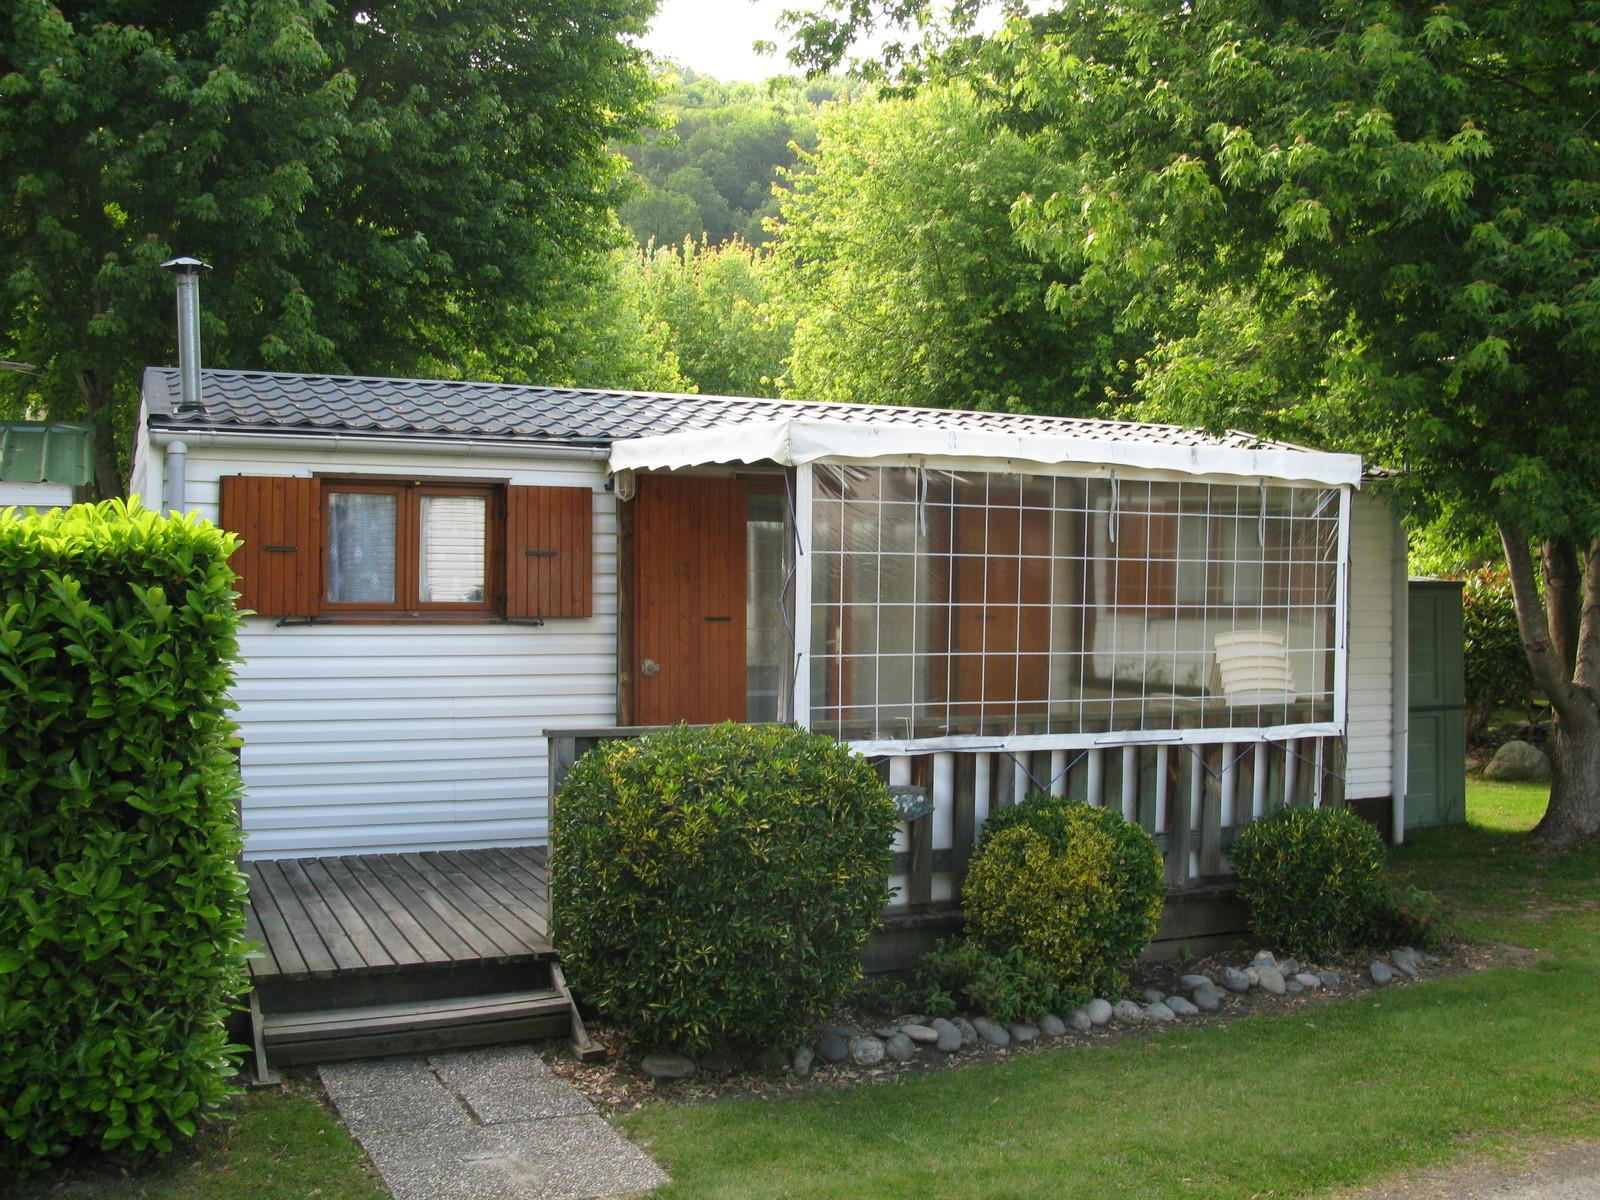 Location - Mobilhome Loisirs Confort 21/24M² (2 Chambres) - Sunêlia Camping Les 3 Vallées